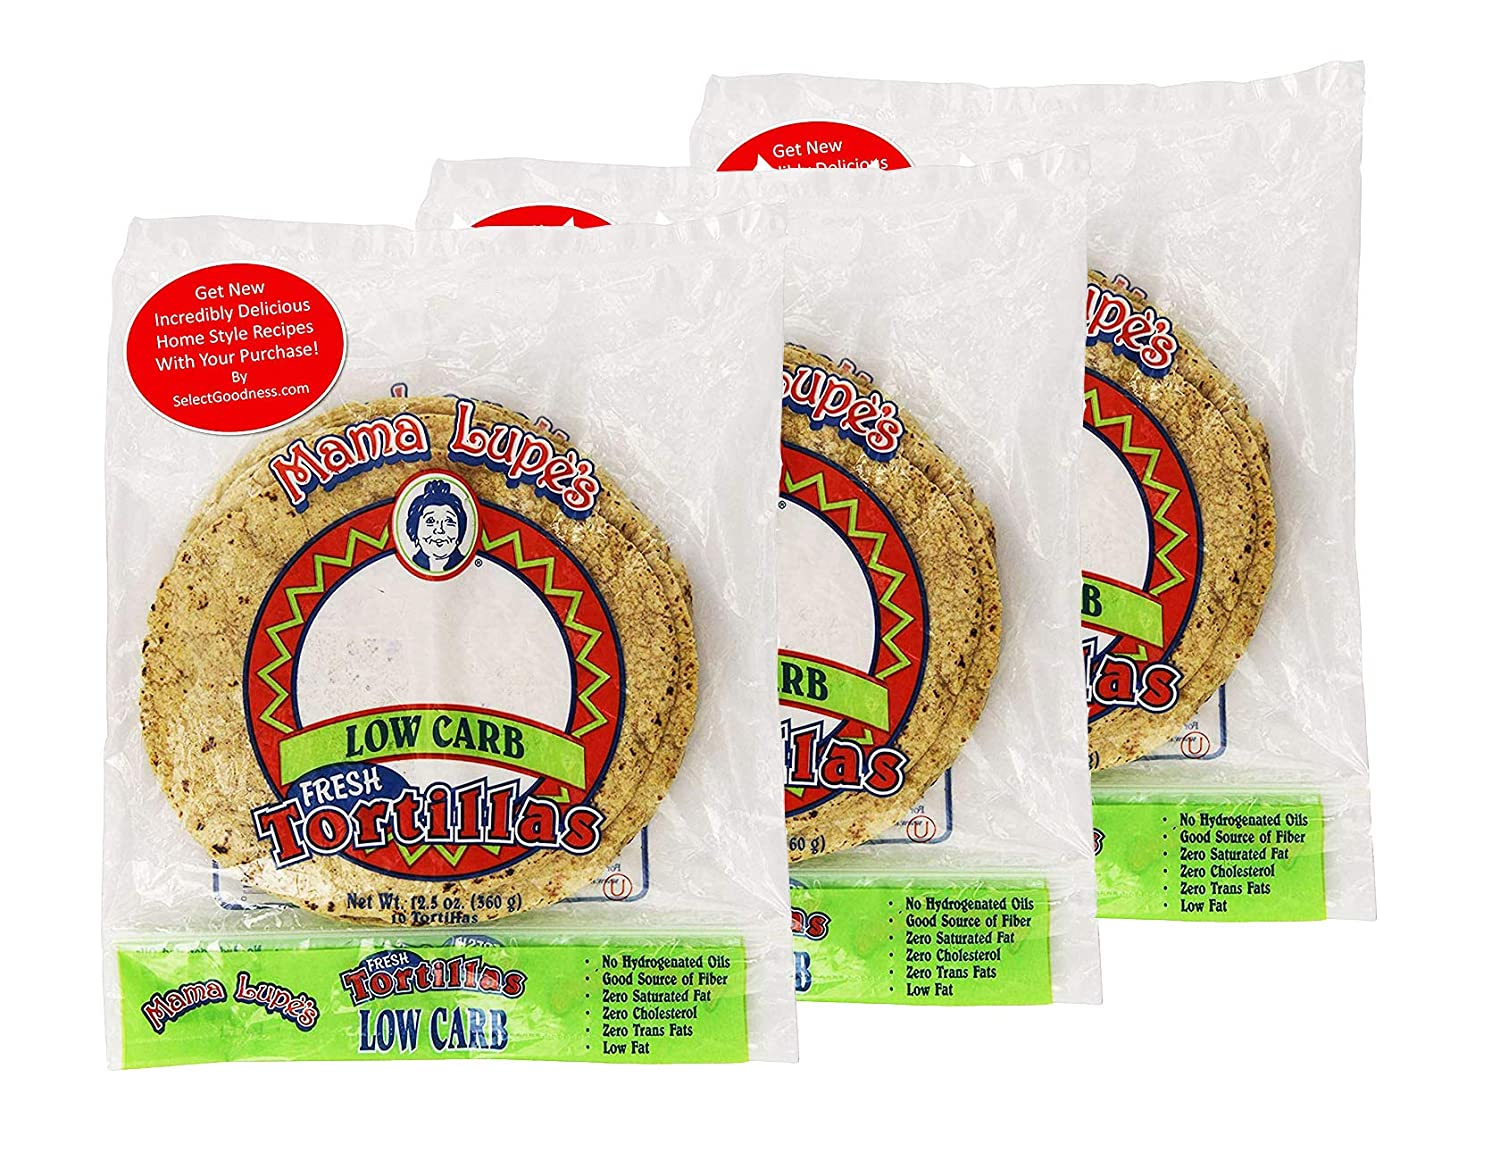 Mama Lupe Low Carb Tortillas 12.5oz Plus Get New Incredibly Delicious Home Style Recipes (Pack of 3)